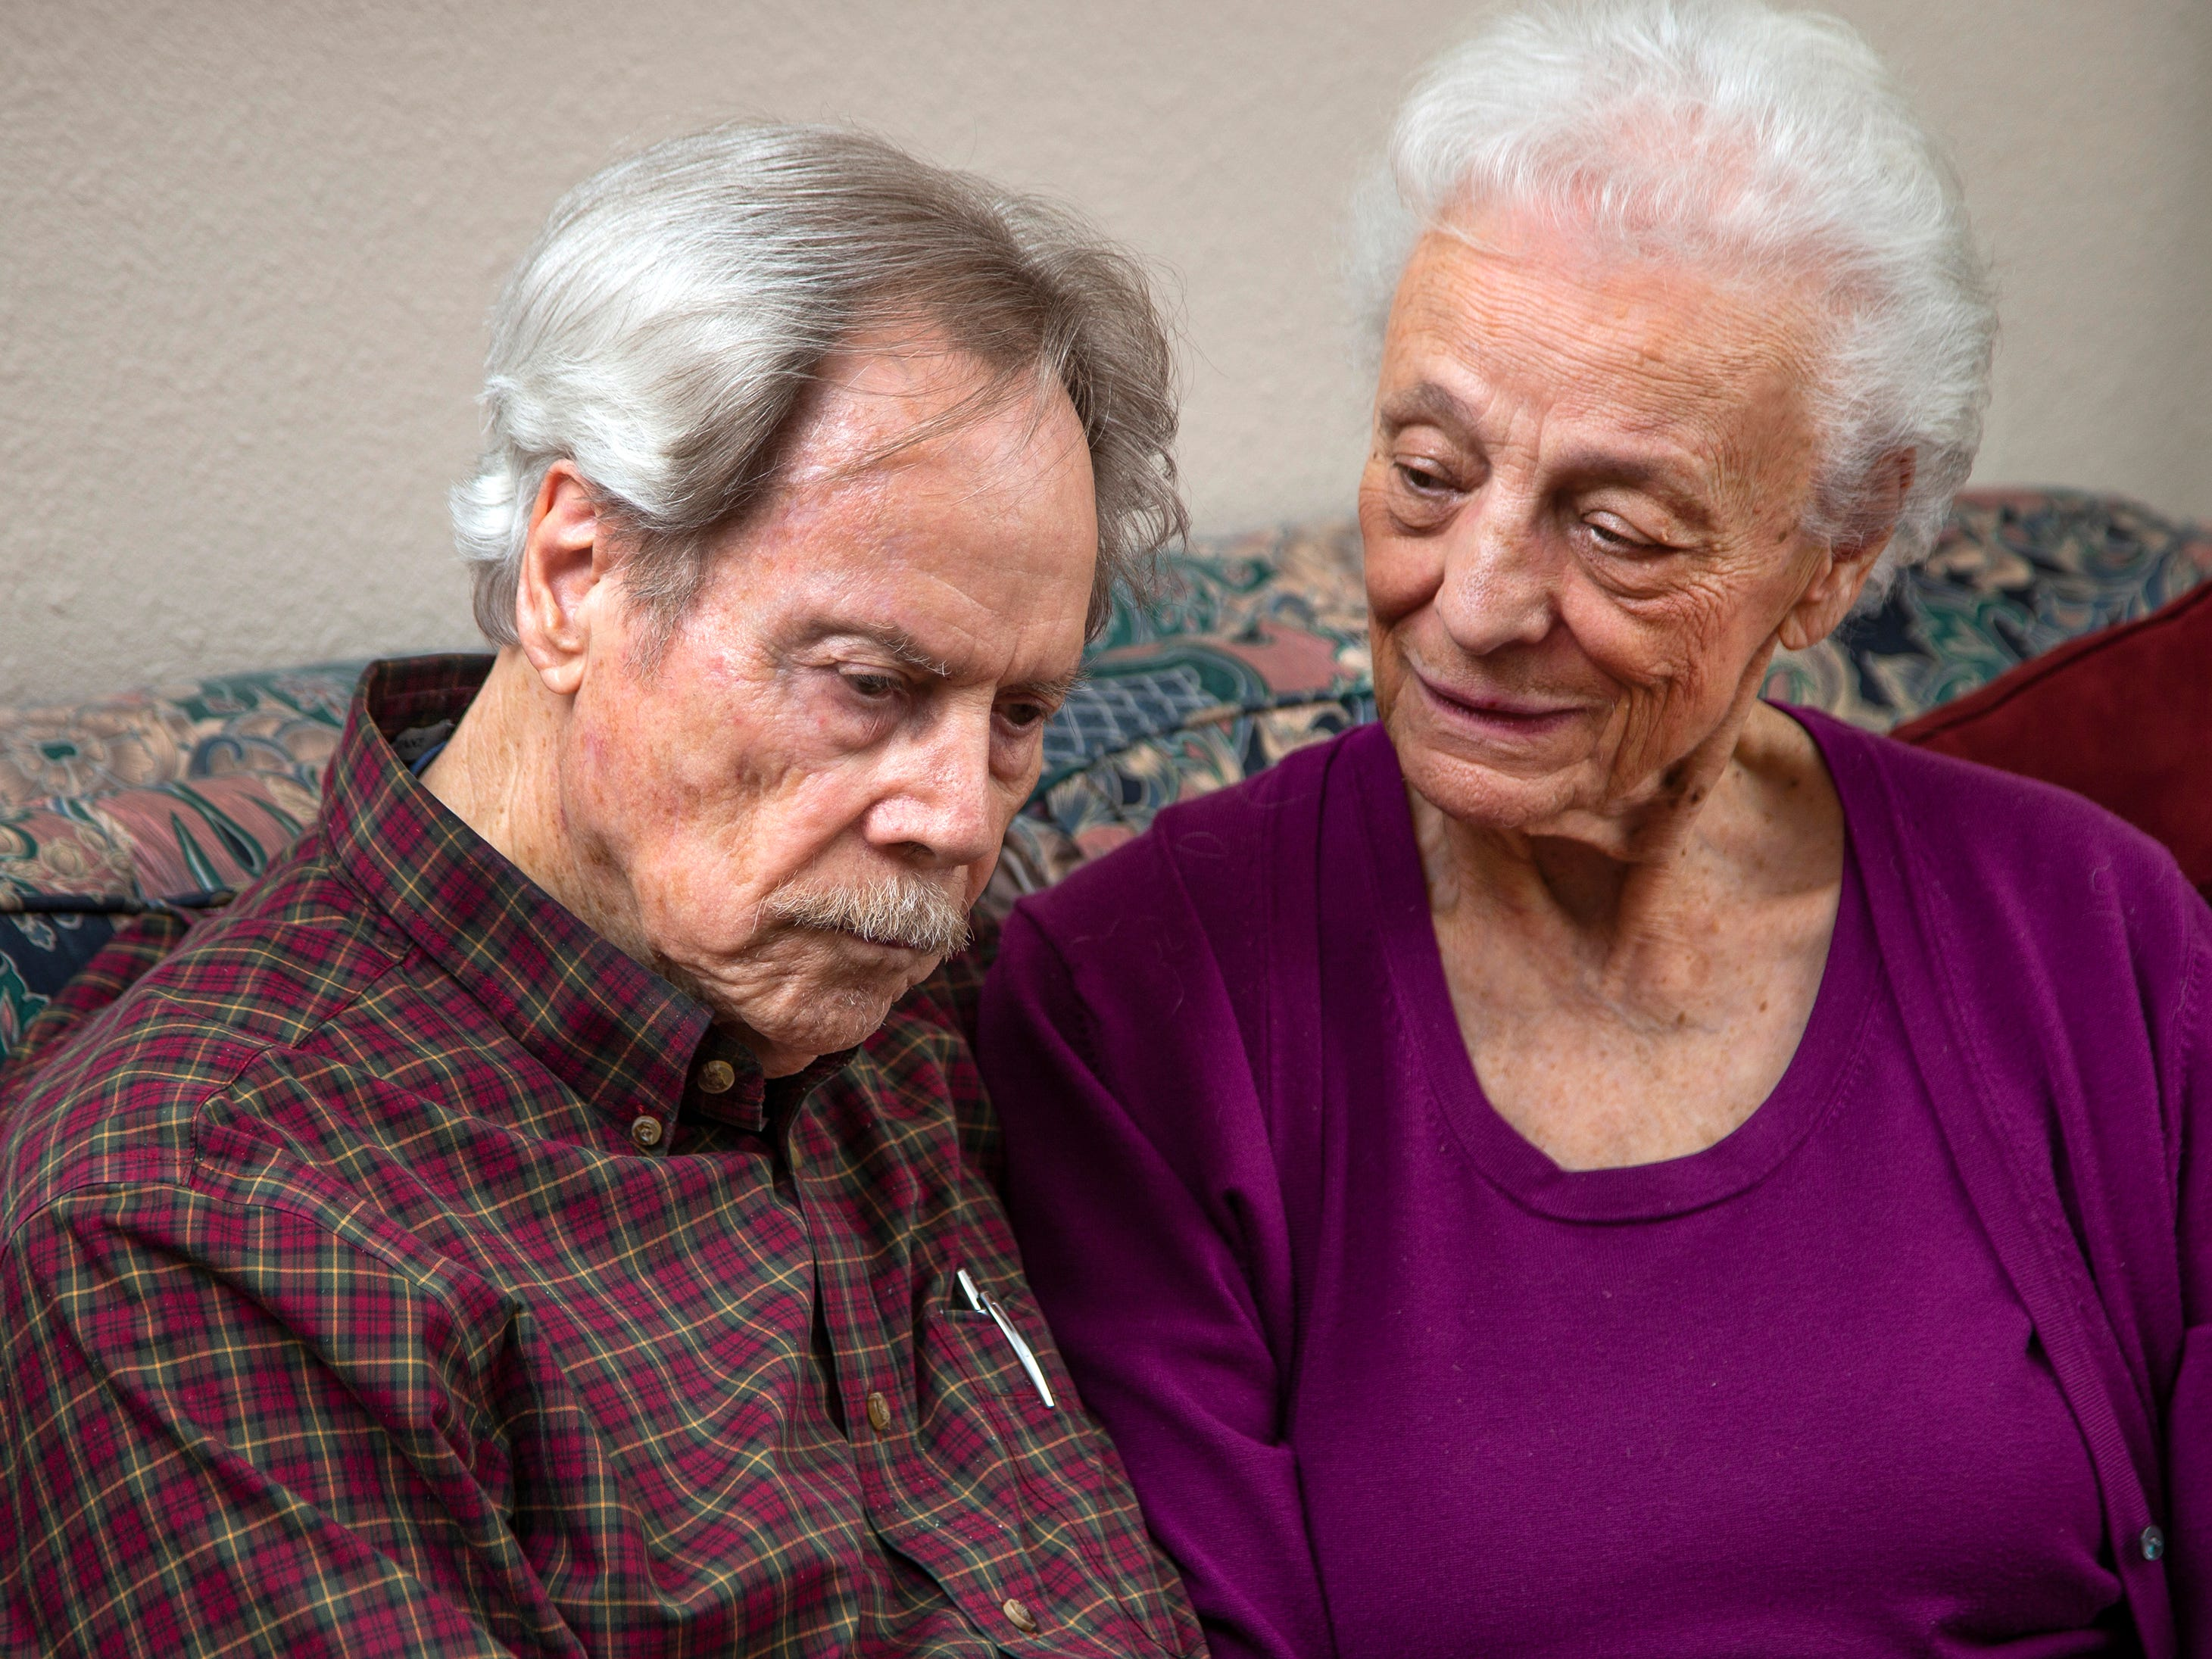 Frank and Betty Lusk are in their late 80s and say they were pressured by Diamond Resorts into buying a $150,000 timeshare with a yearly maintenance fee. They talk about their ordeal at their West Valley home March 19, 2019.